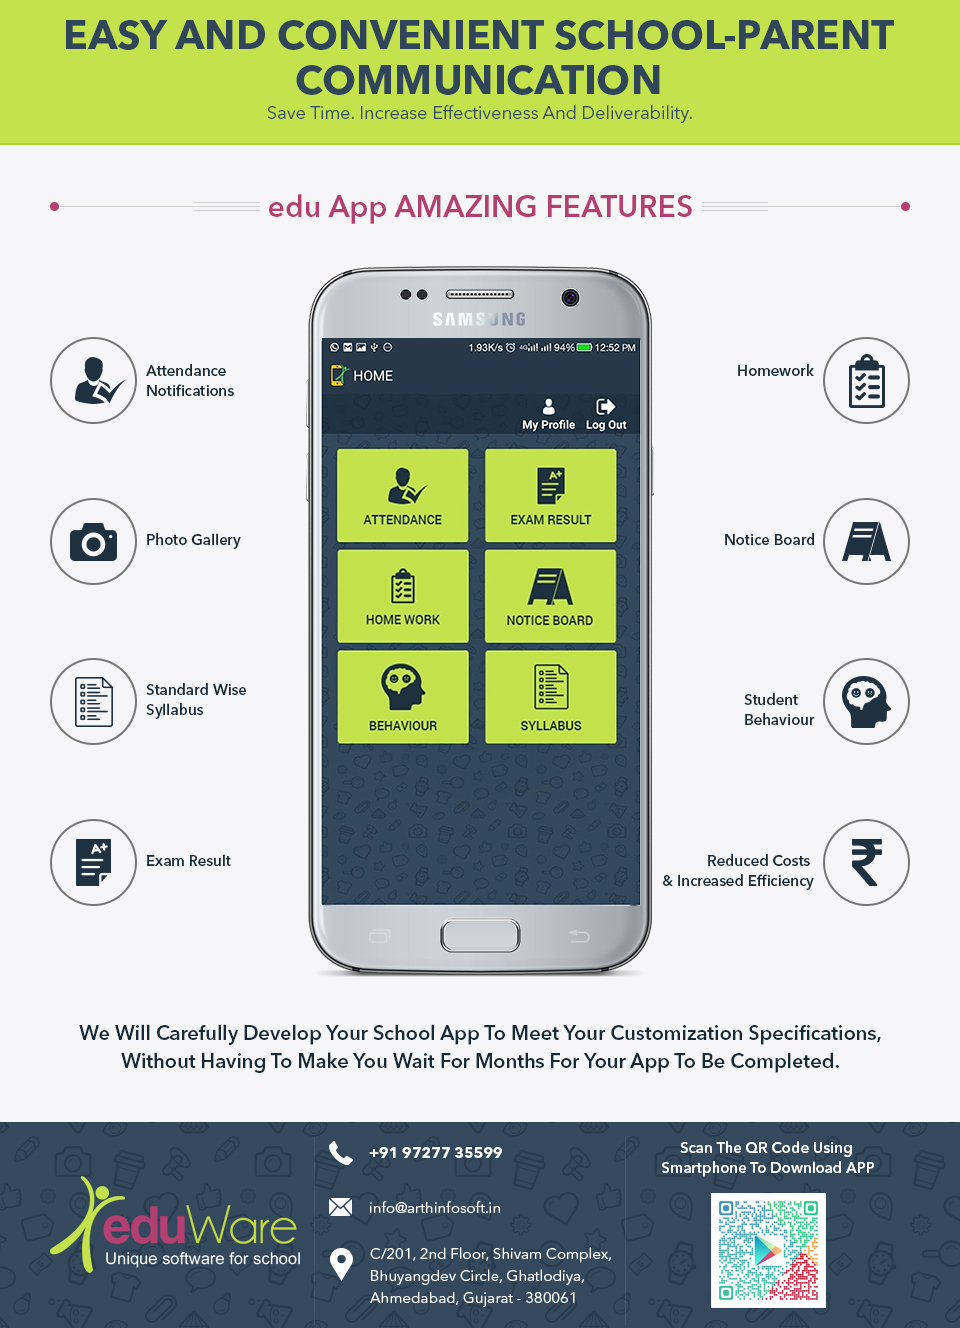 eduapp a perfect communication app between school and parent